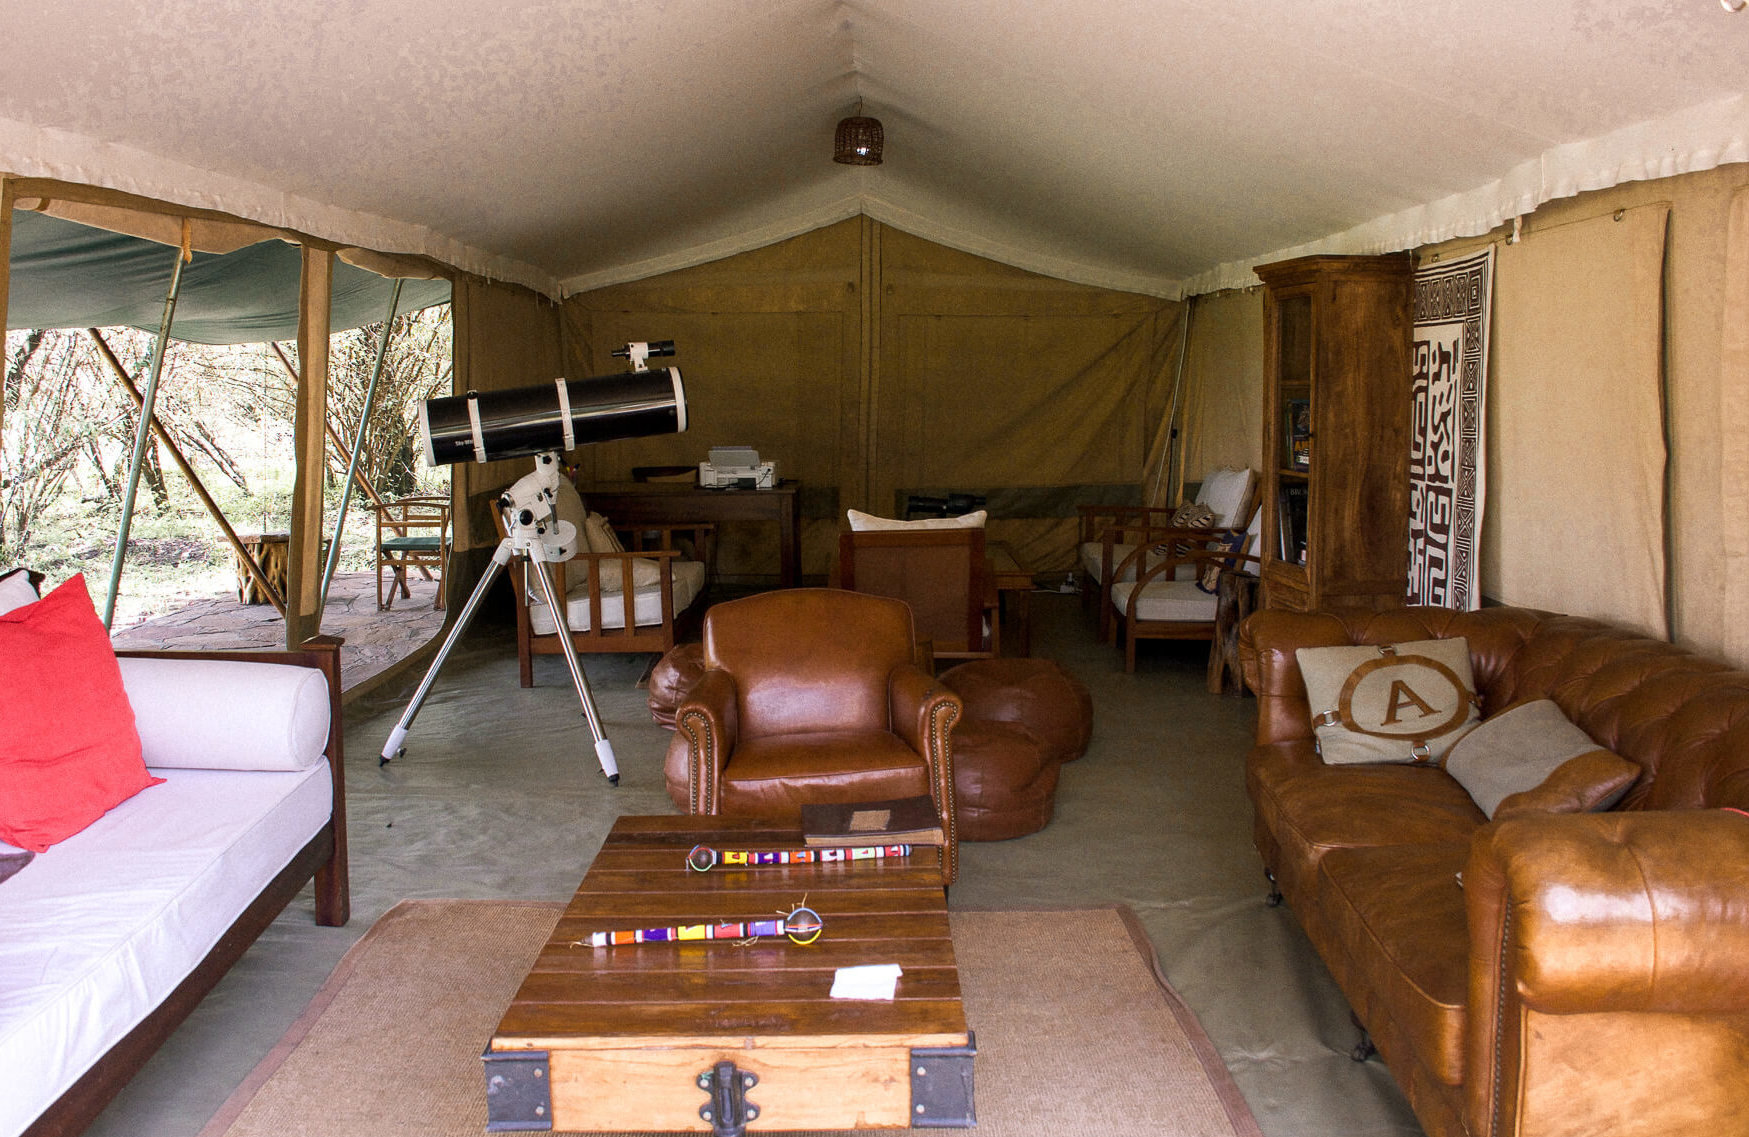 Inside the lounge tent at Losokwan Luxury Tented Camp